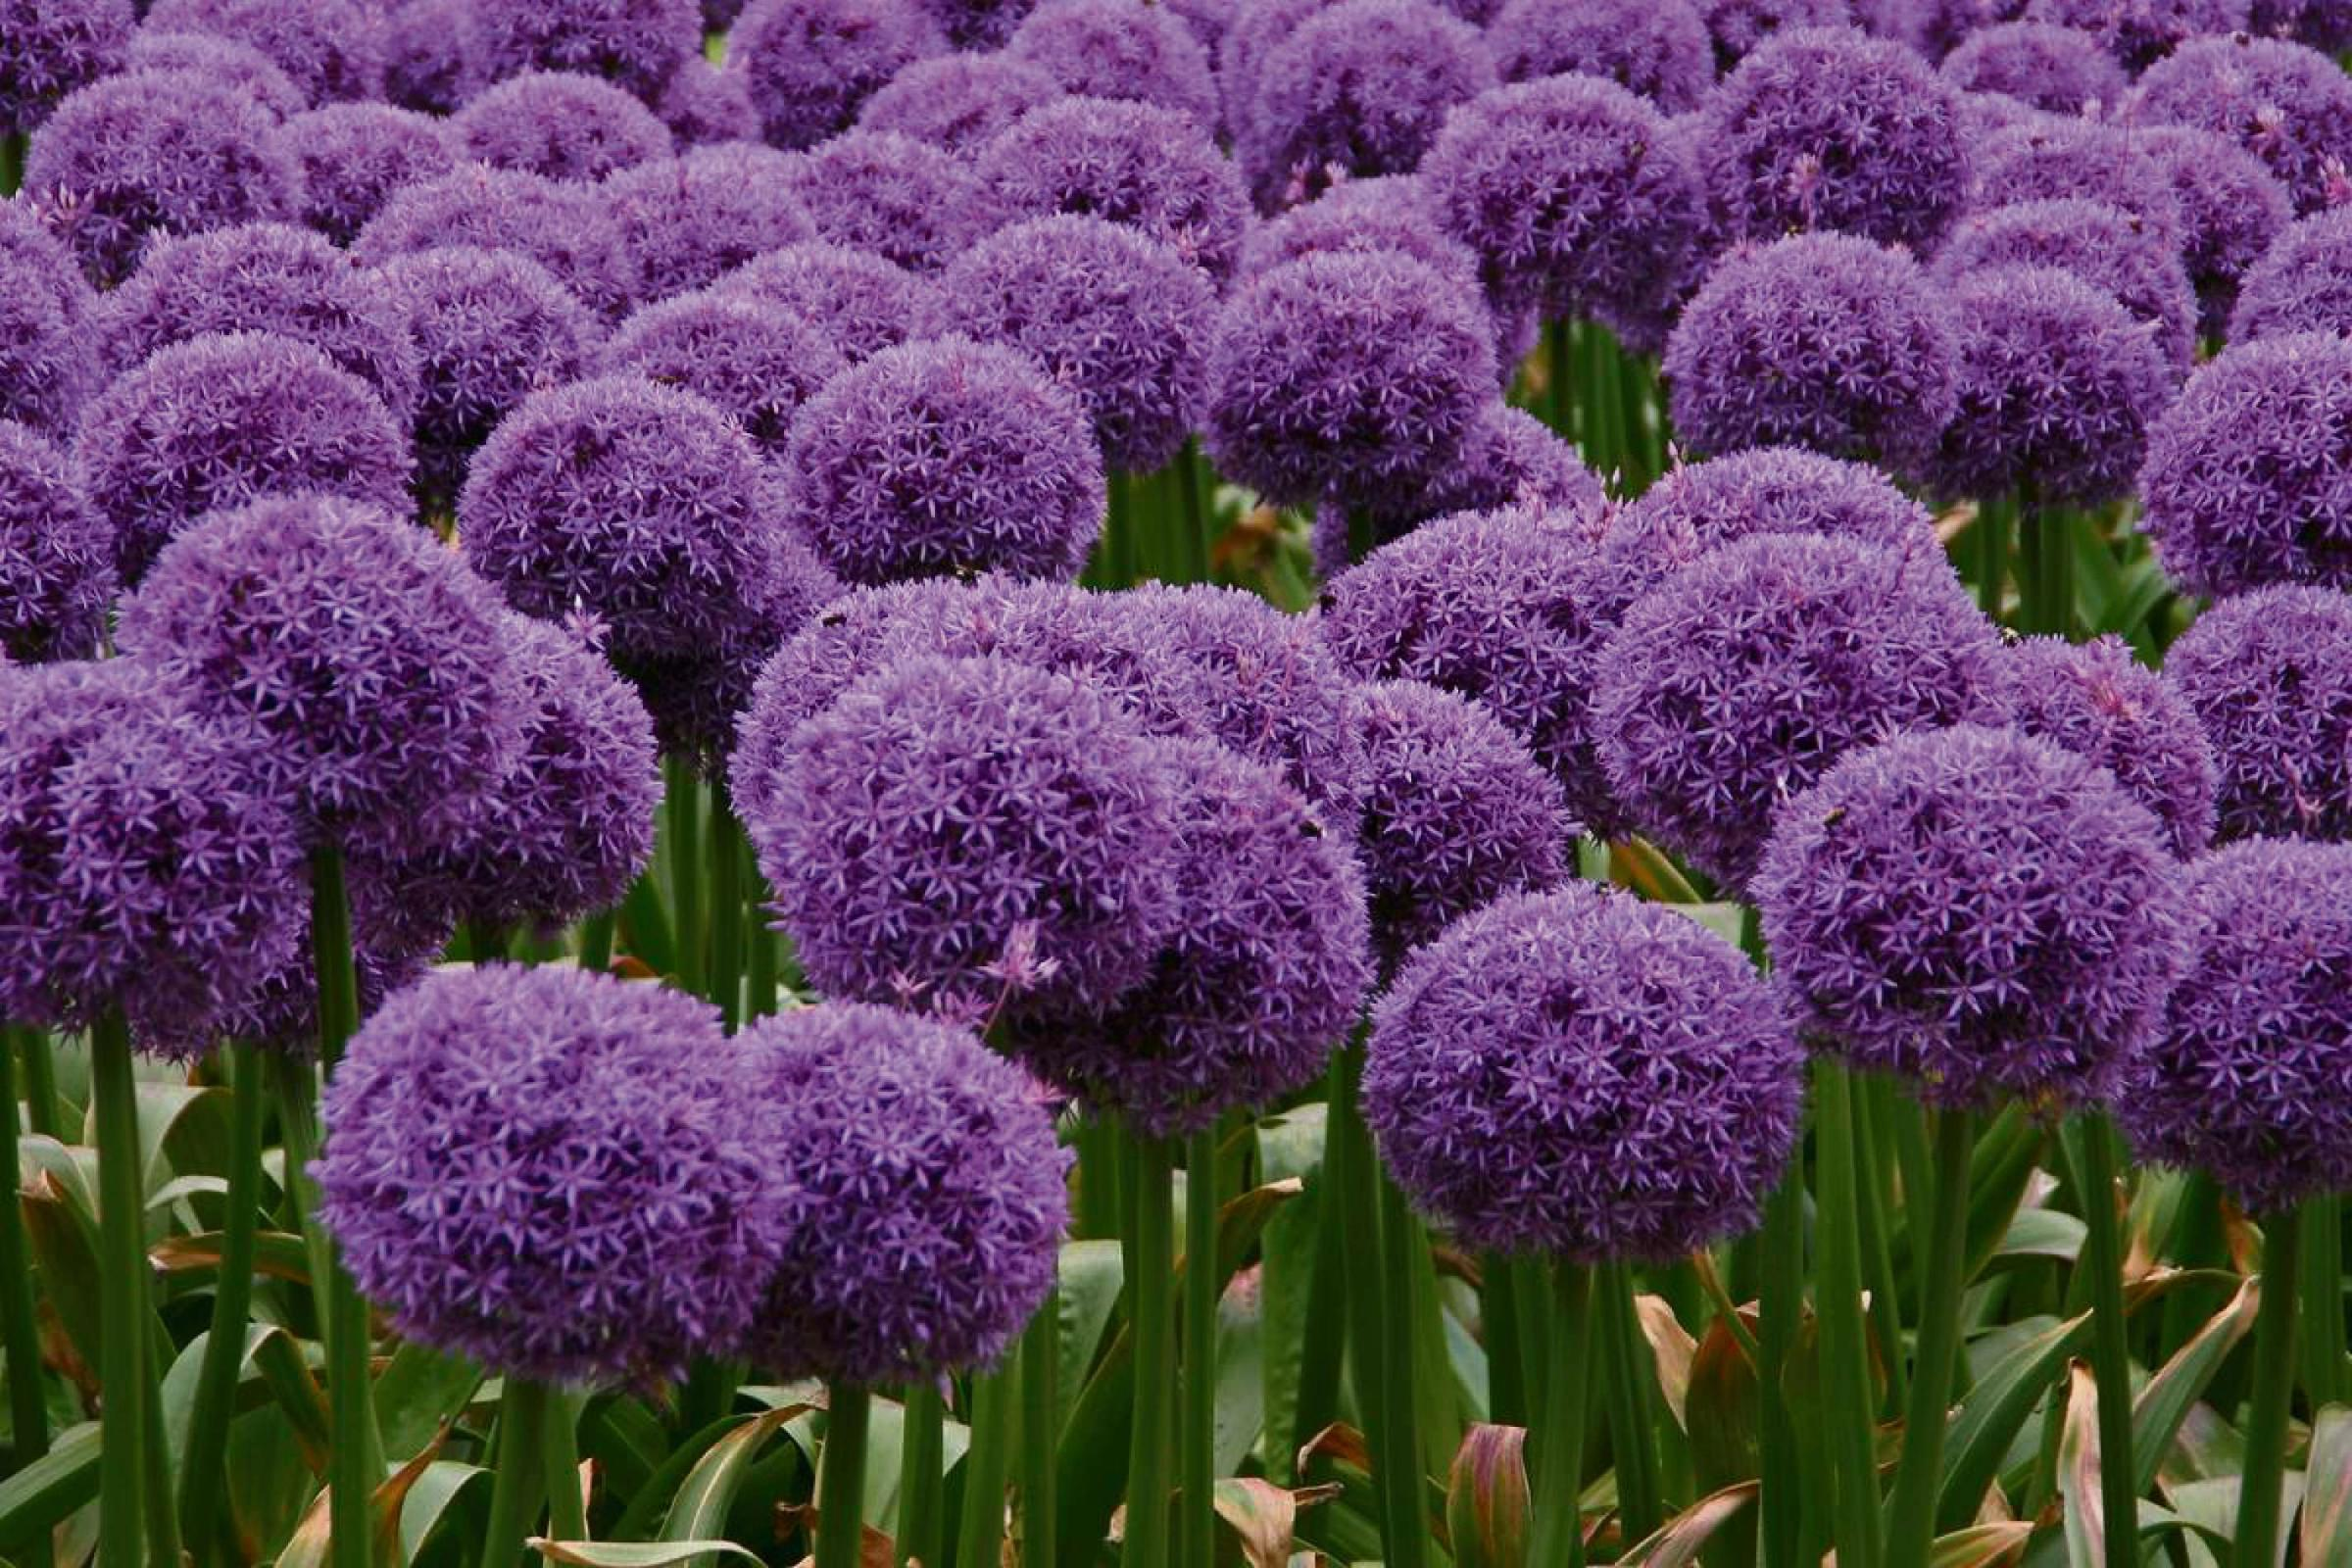 IT'S THE WEEKEND: Grow It - Getting gorgeous alliums